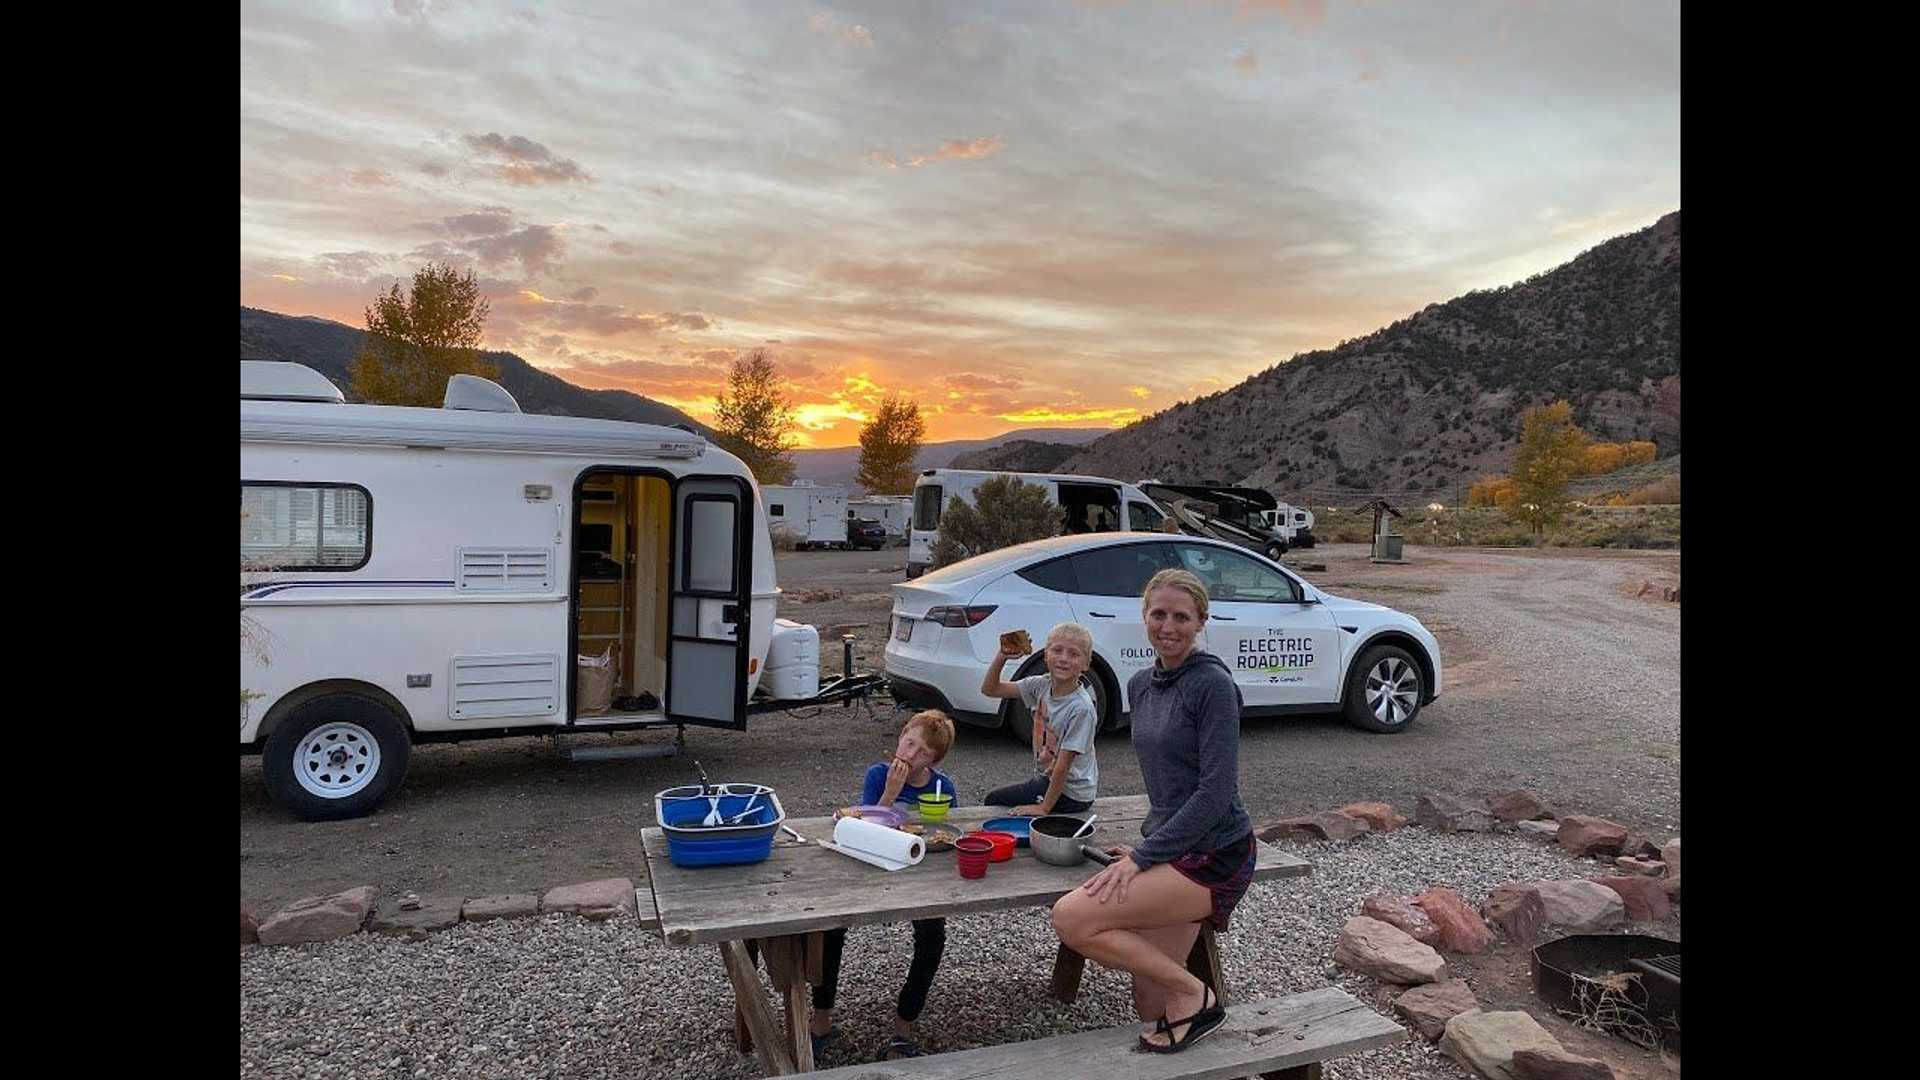 Tesla Model Y Tows A Camper 1,500 Miles: What's The Final Verdict?